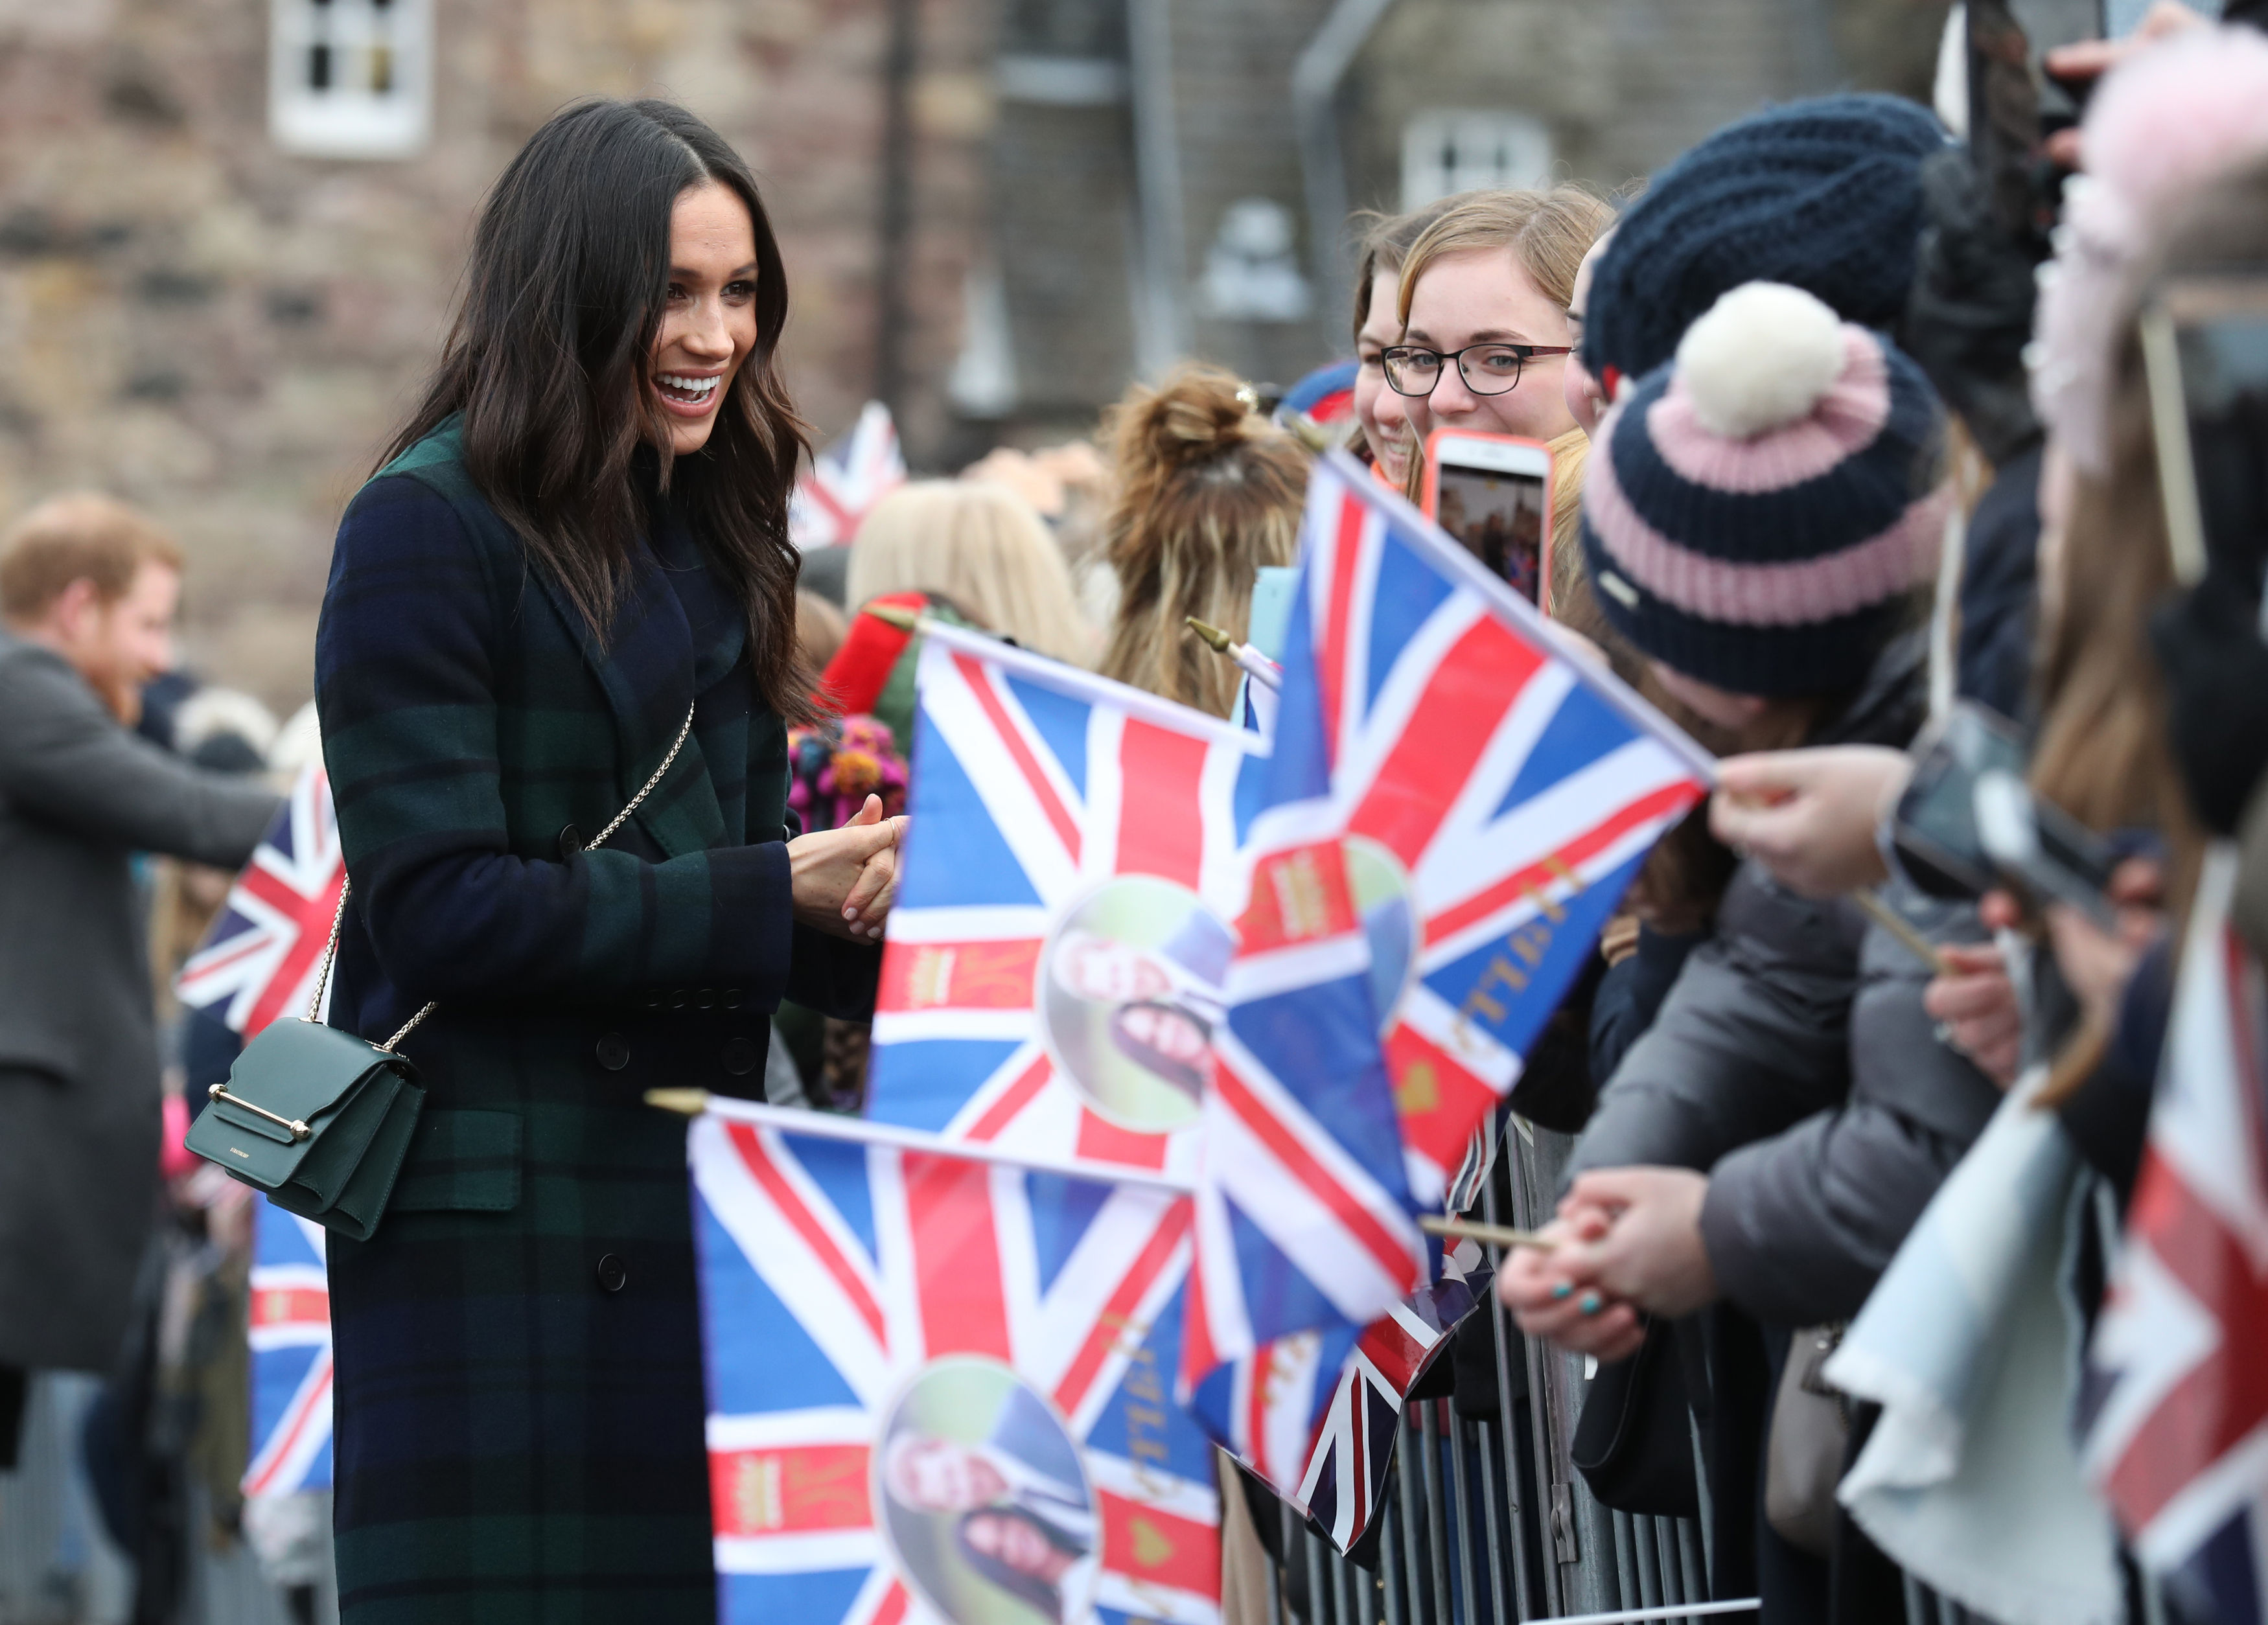 Flags were out for Meghan Markle during her walkabout (Andrew Milligan/PA)